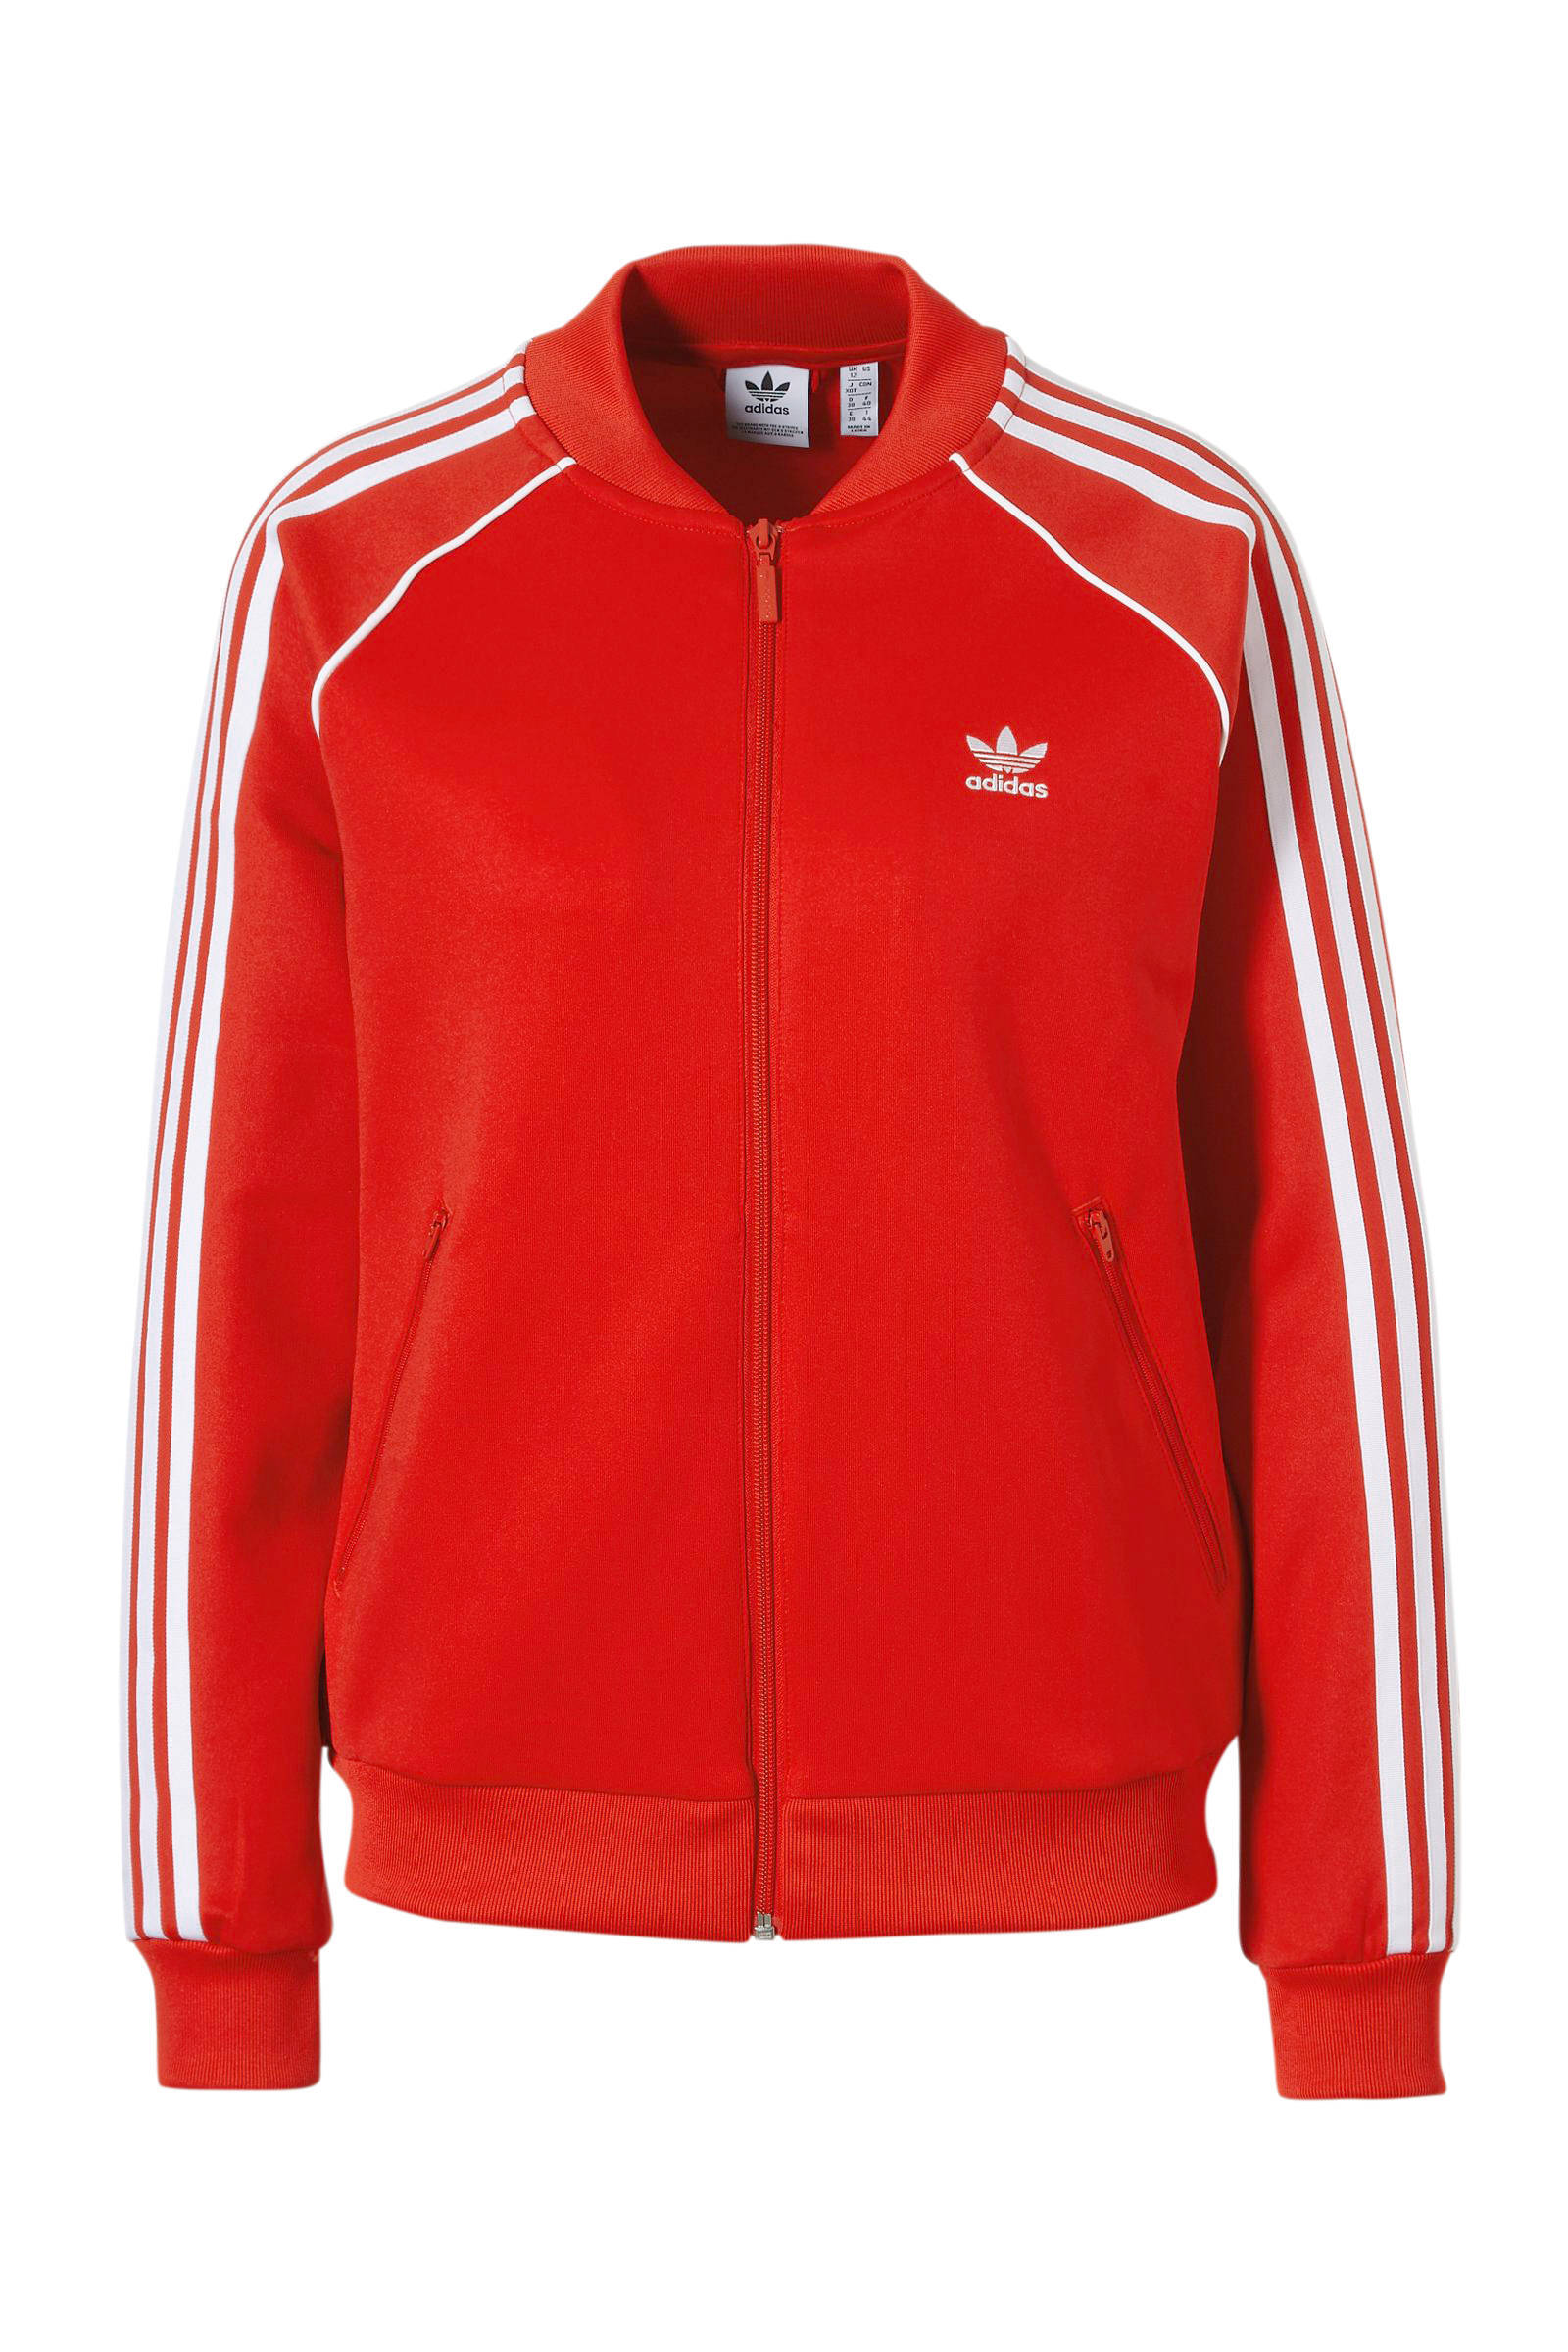 adidas trainingsvest rood